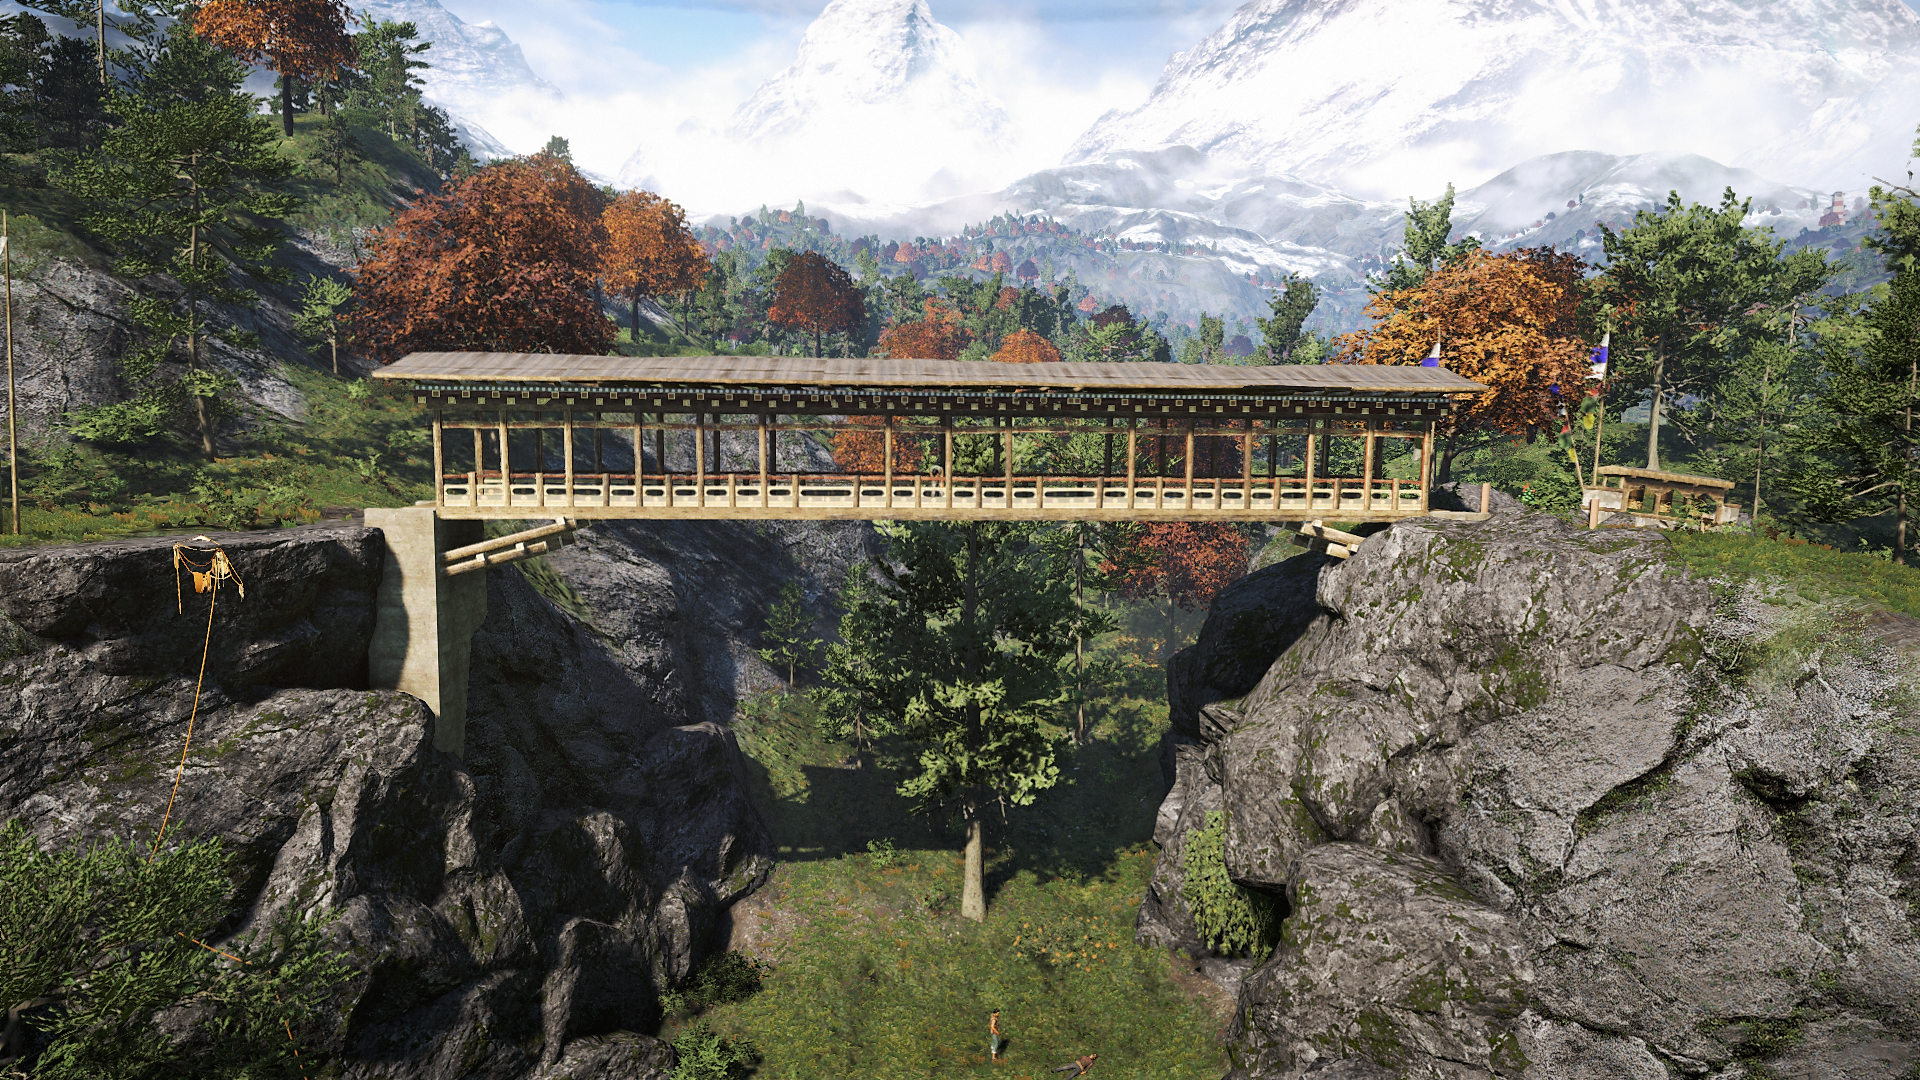 Far Cry 4 bridge 1 298110_20170629183147_1